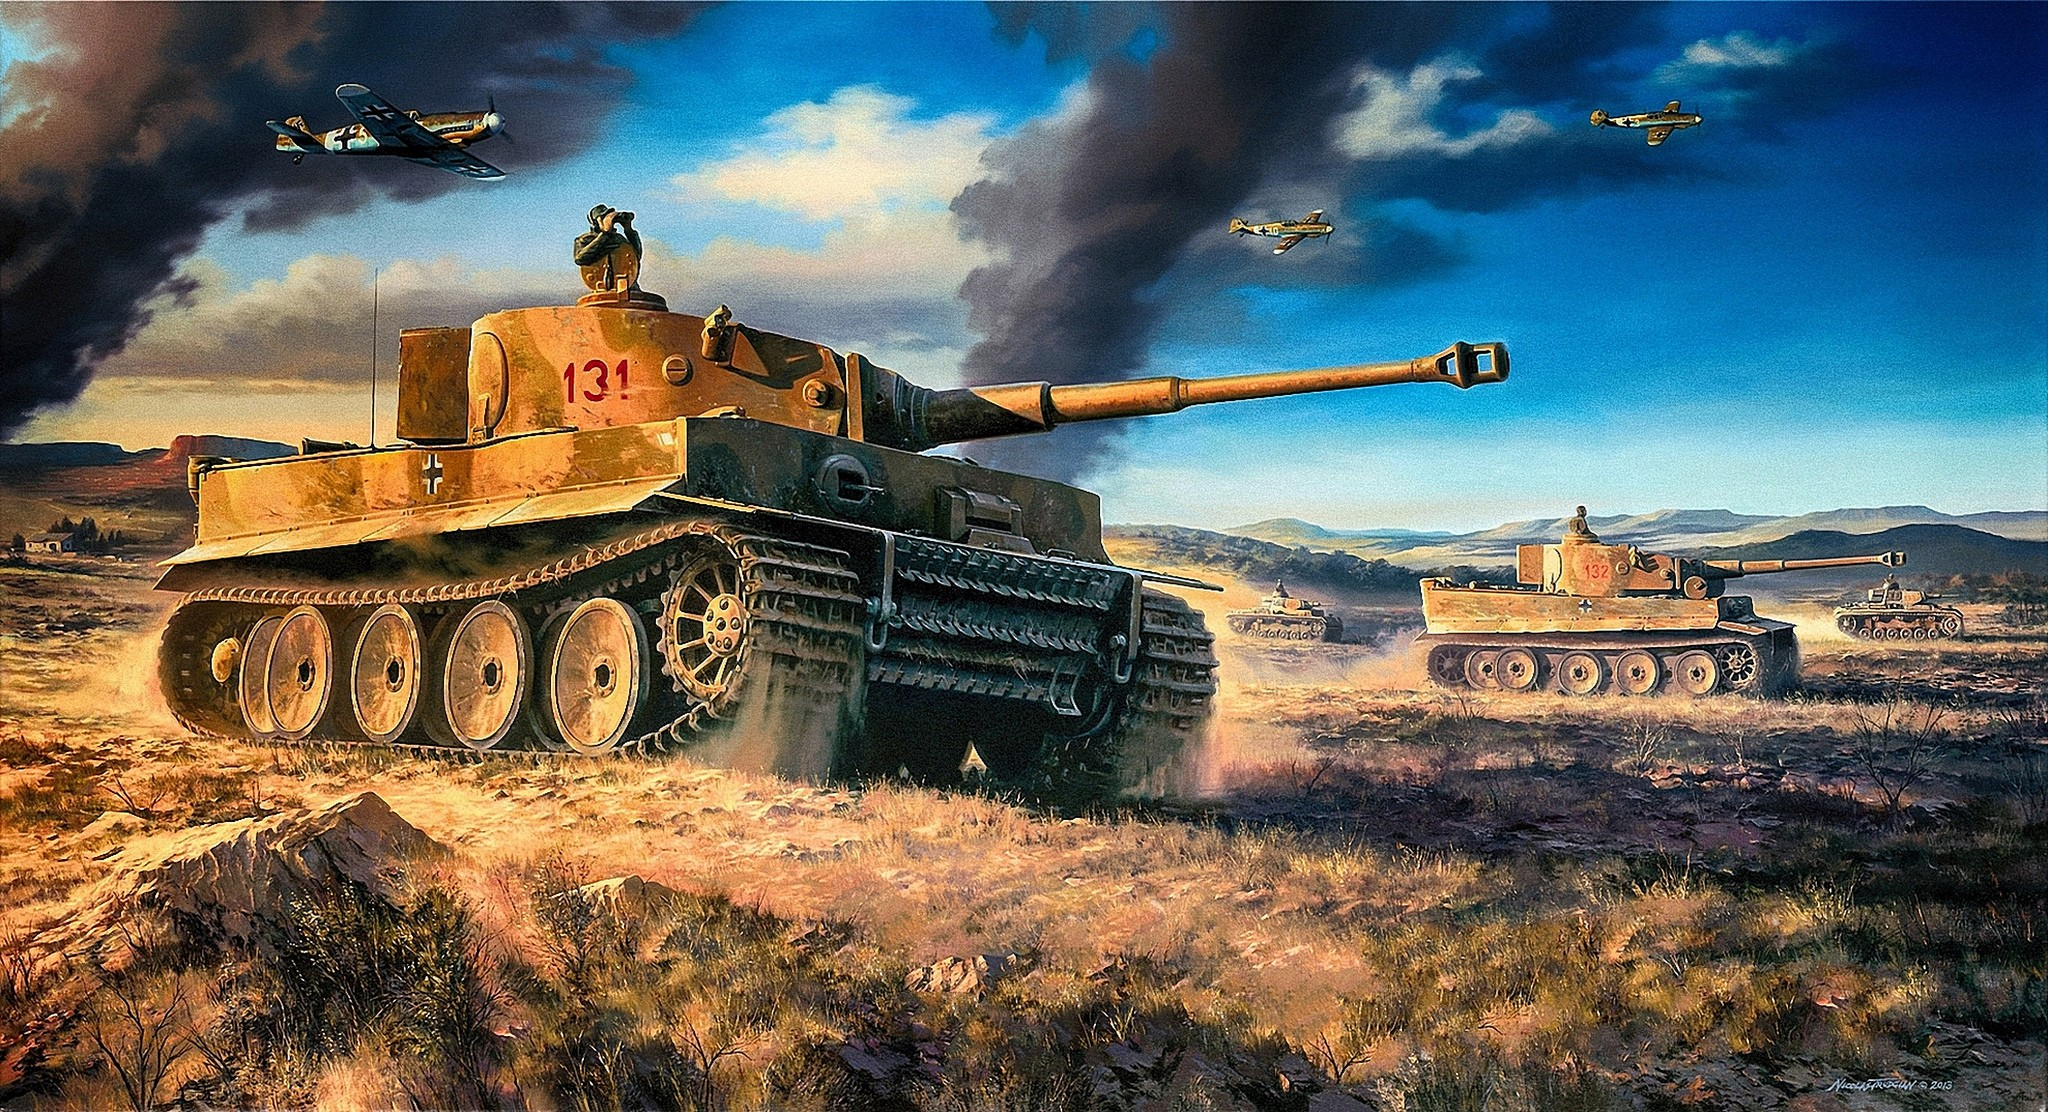 Tiger Tank 131 Other